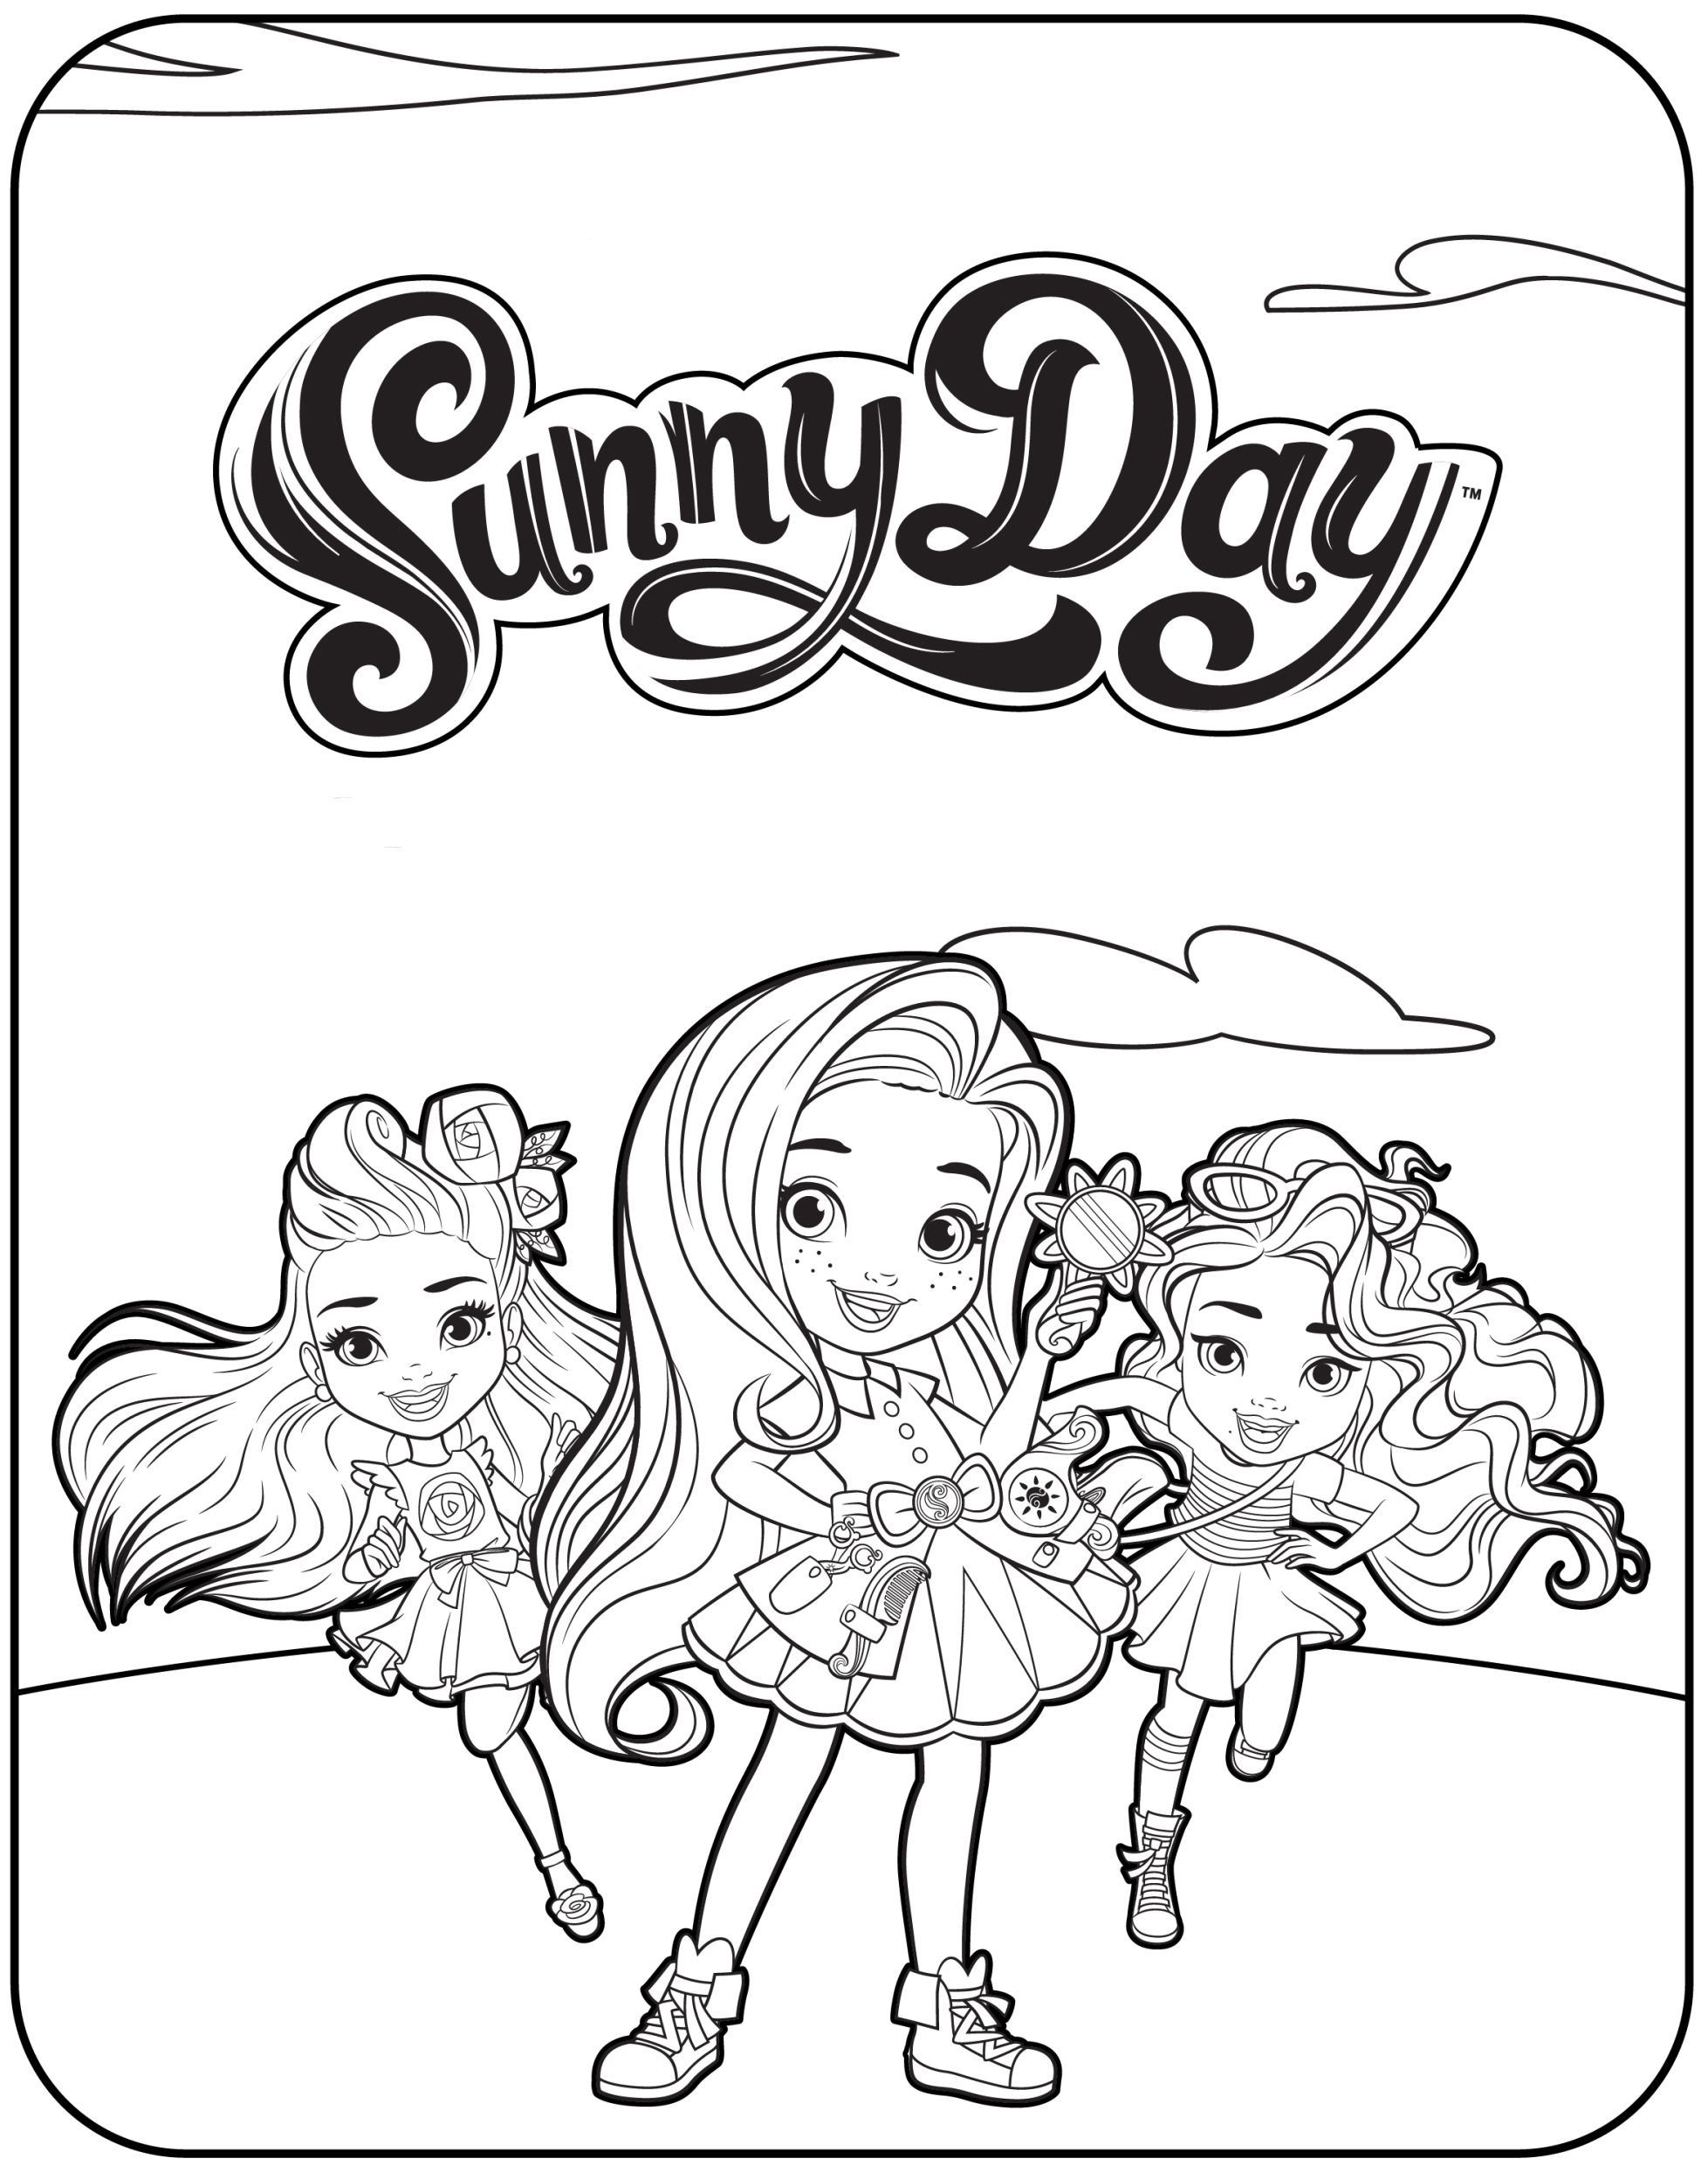 Free Printable Sunny Day Coloring Pages In 2020 Coloring Pages Cartoon Coloring Pages Free Printable Coloring Pages